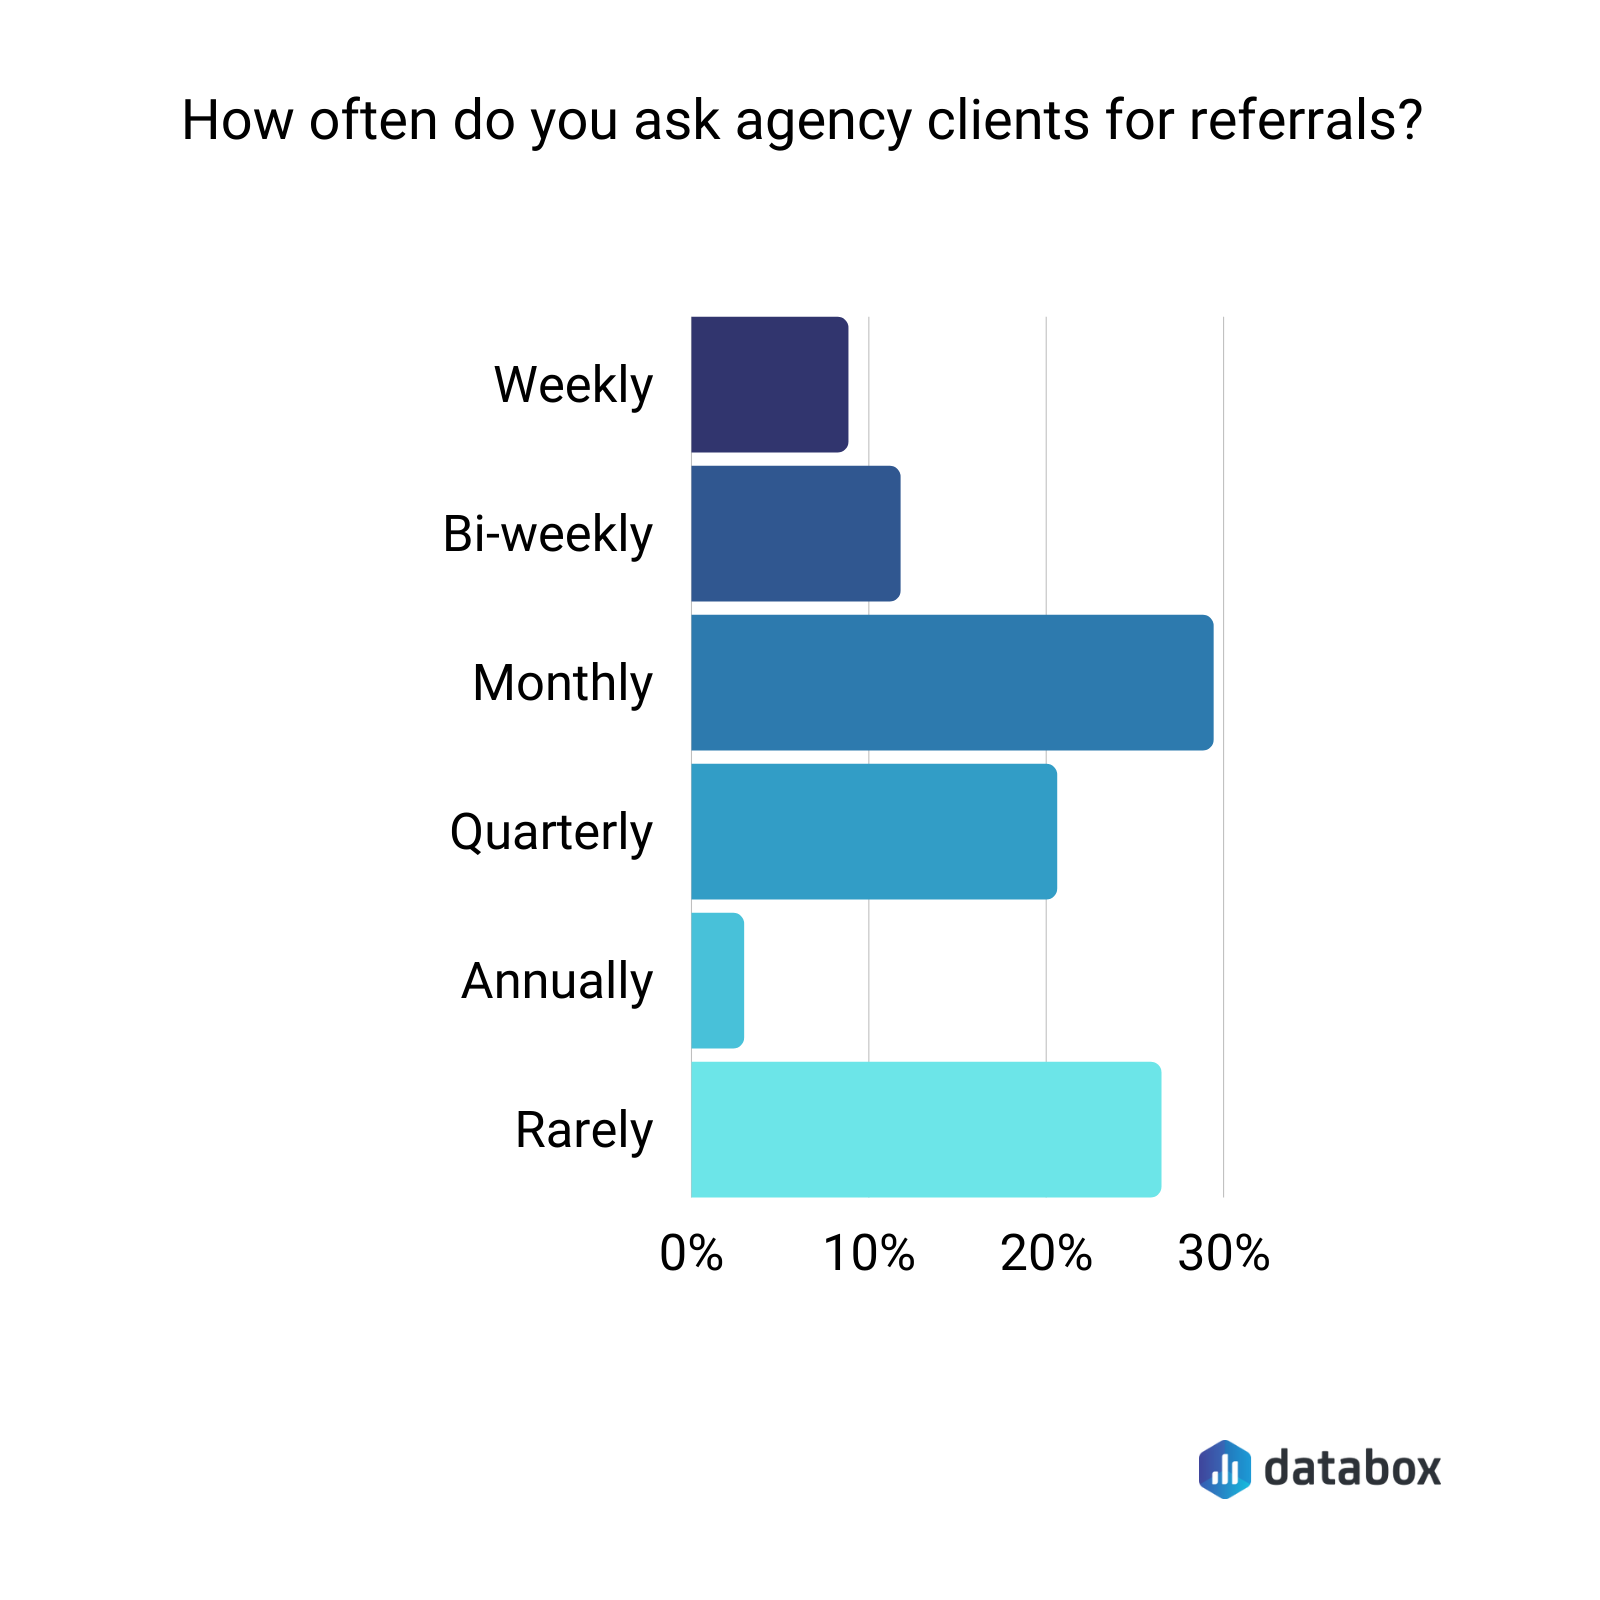 How often do you ask agency clients for referrals?